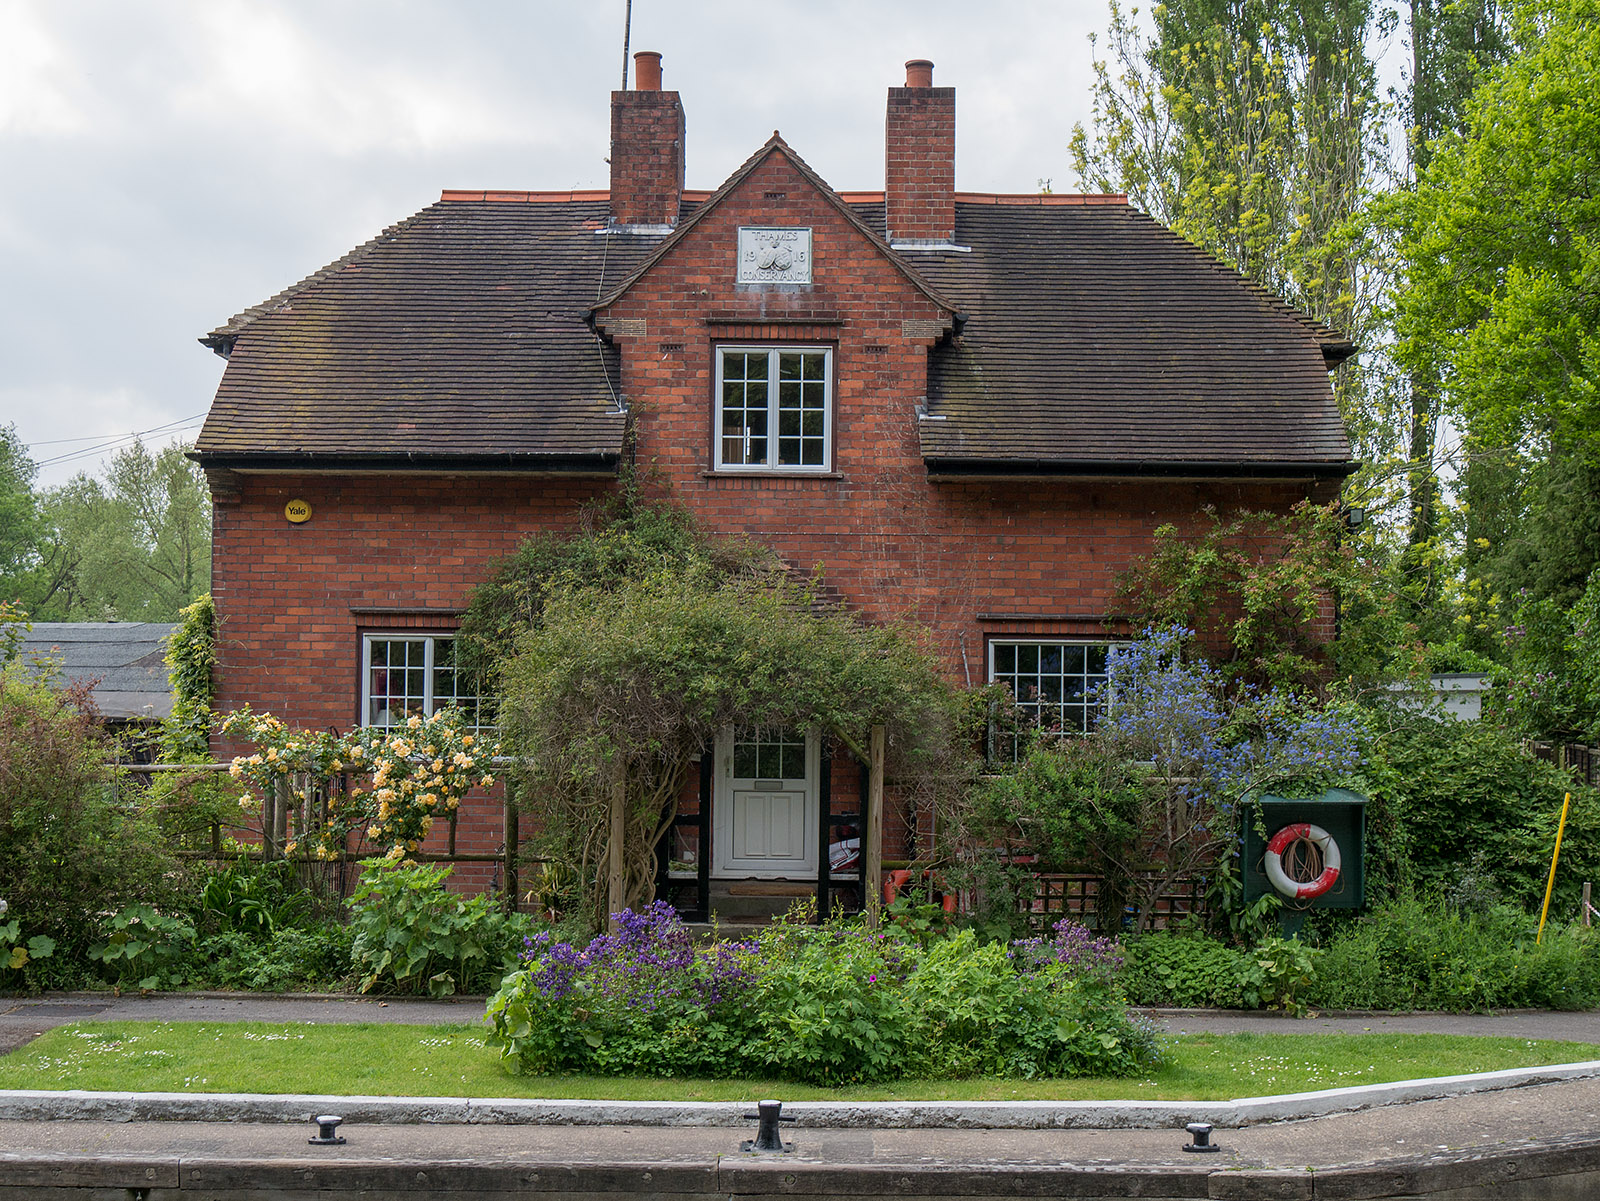 Lock keeper house at Sonning lock